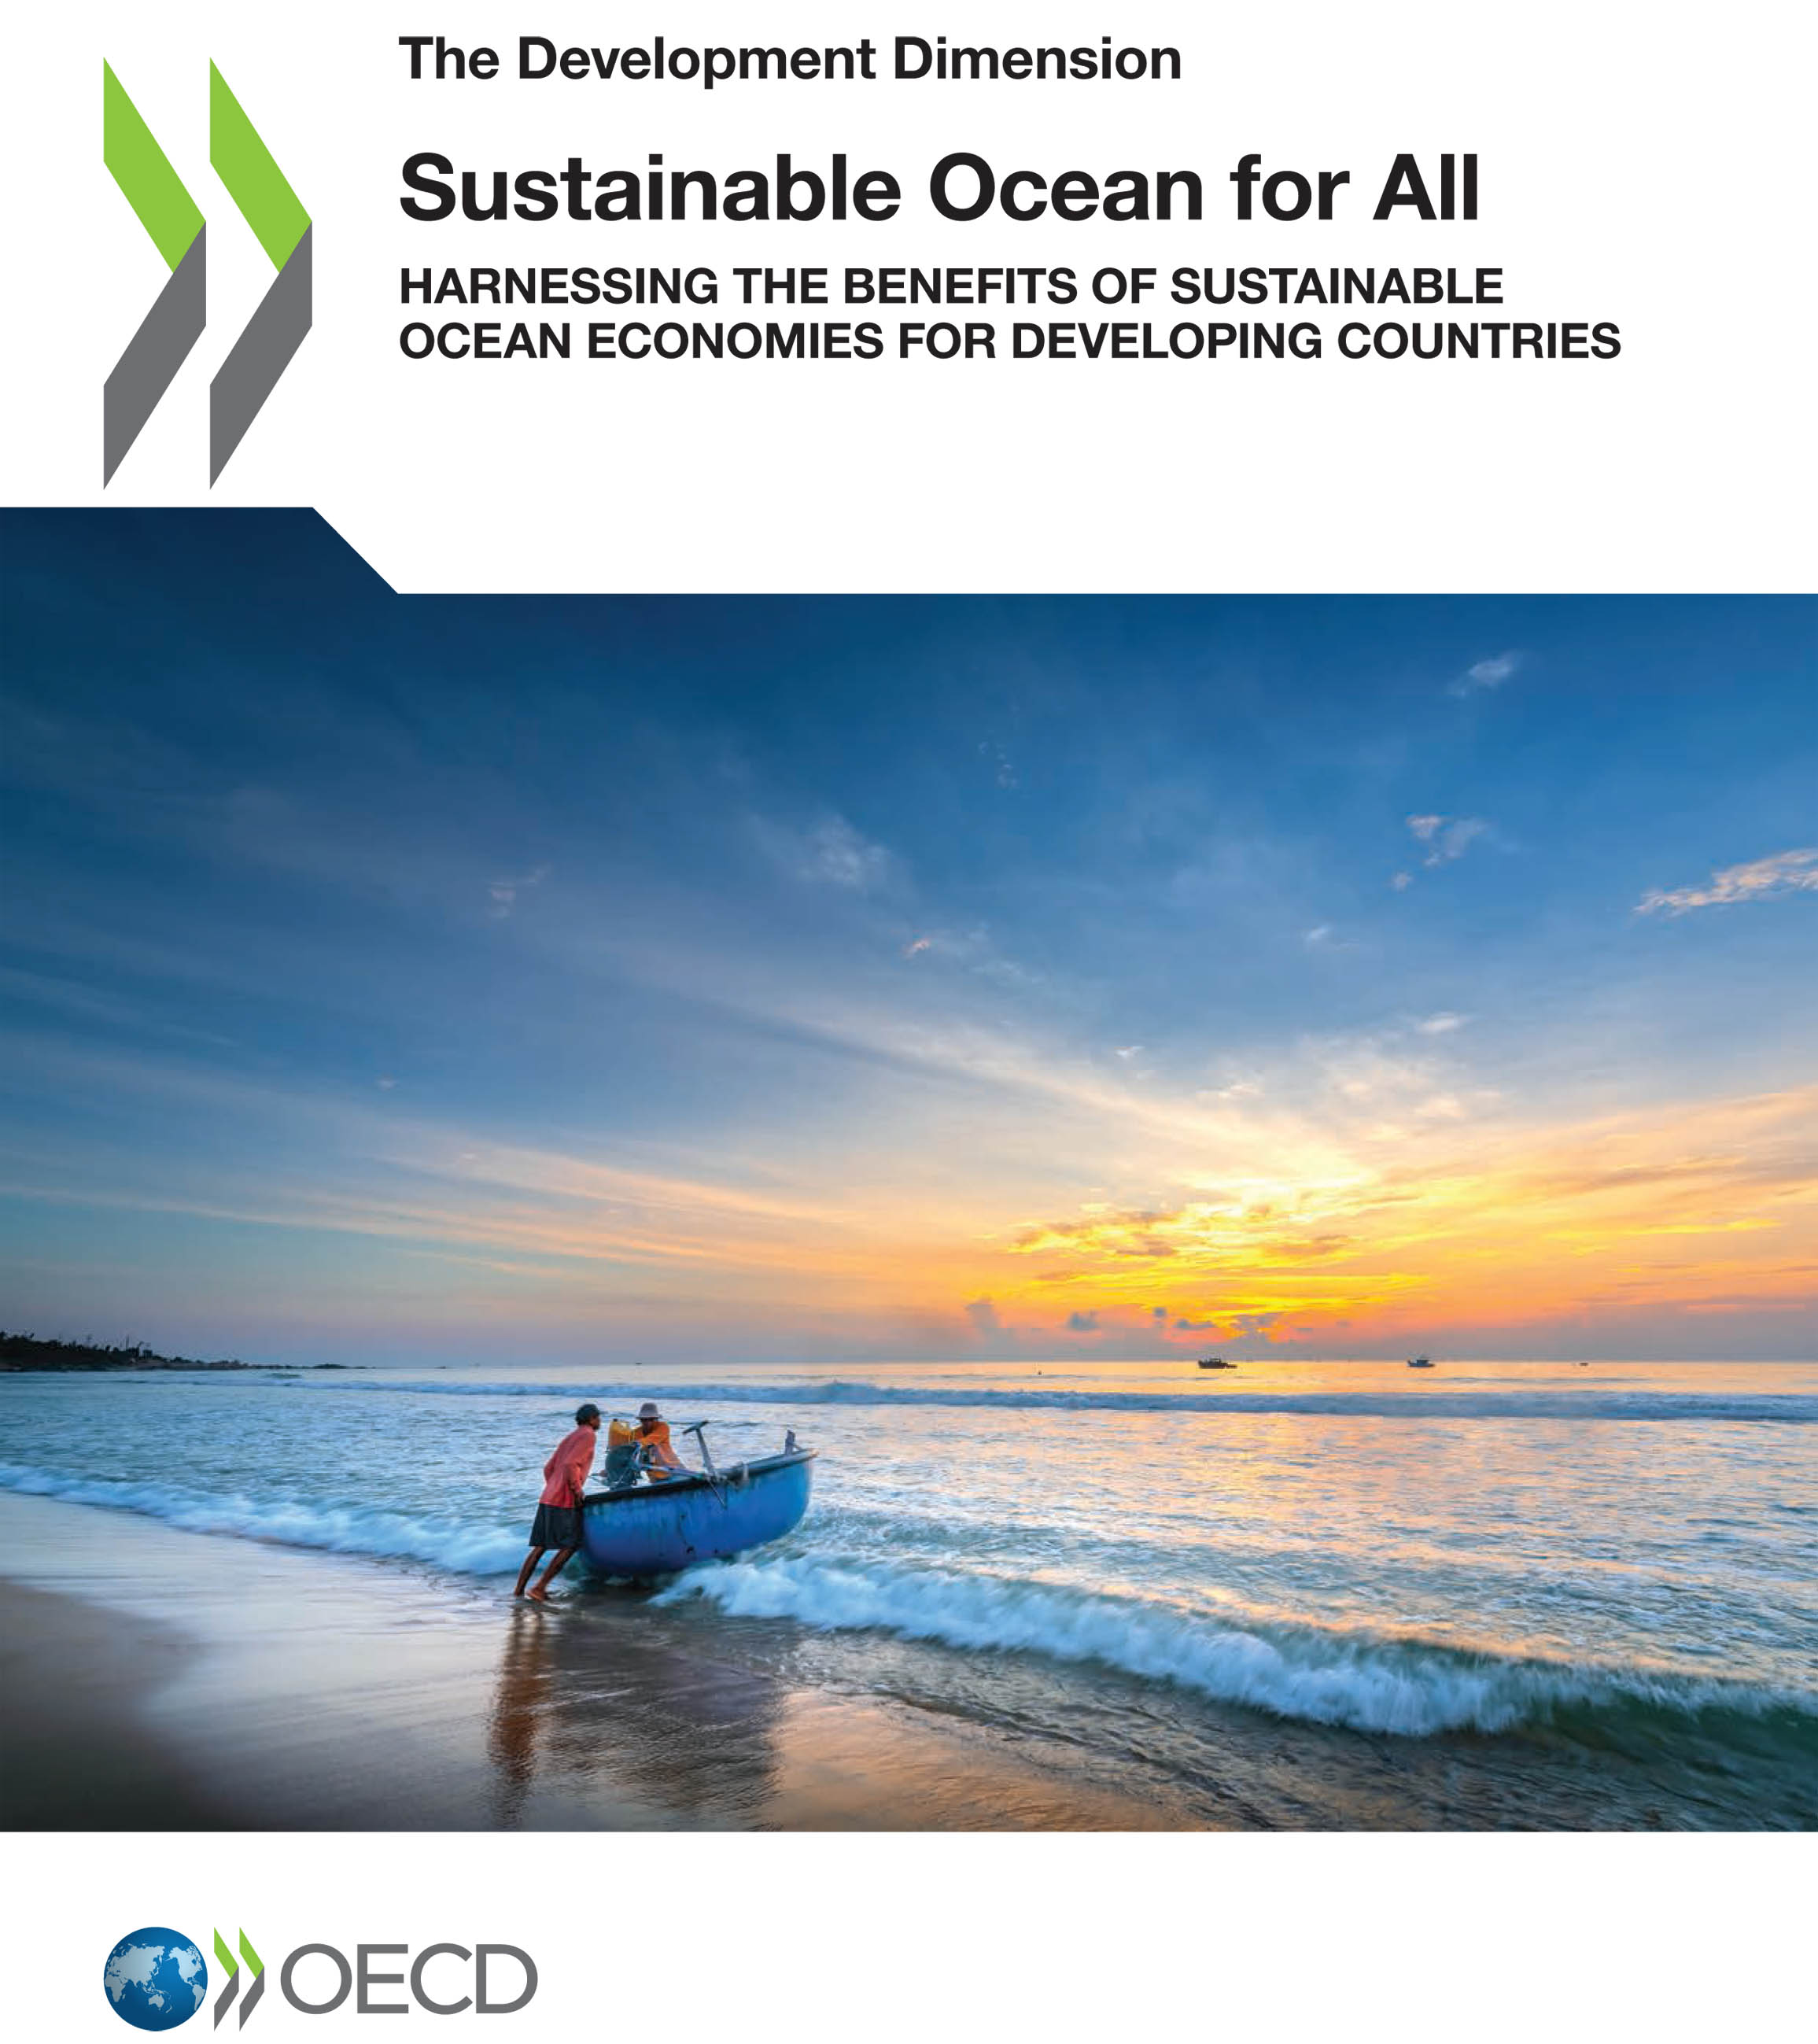 Sustainable Ocean for All OECD Report 2020